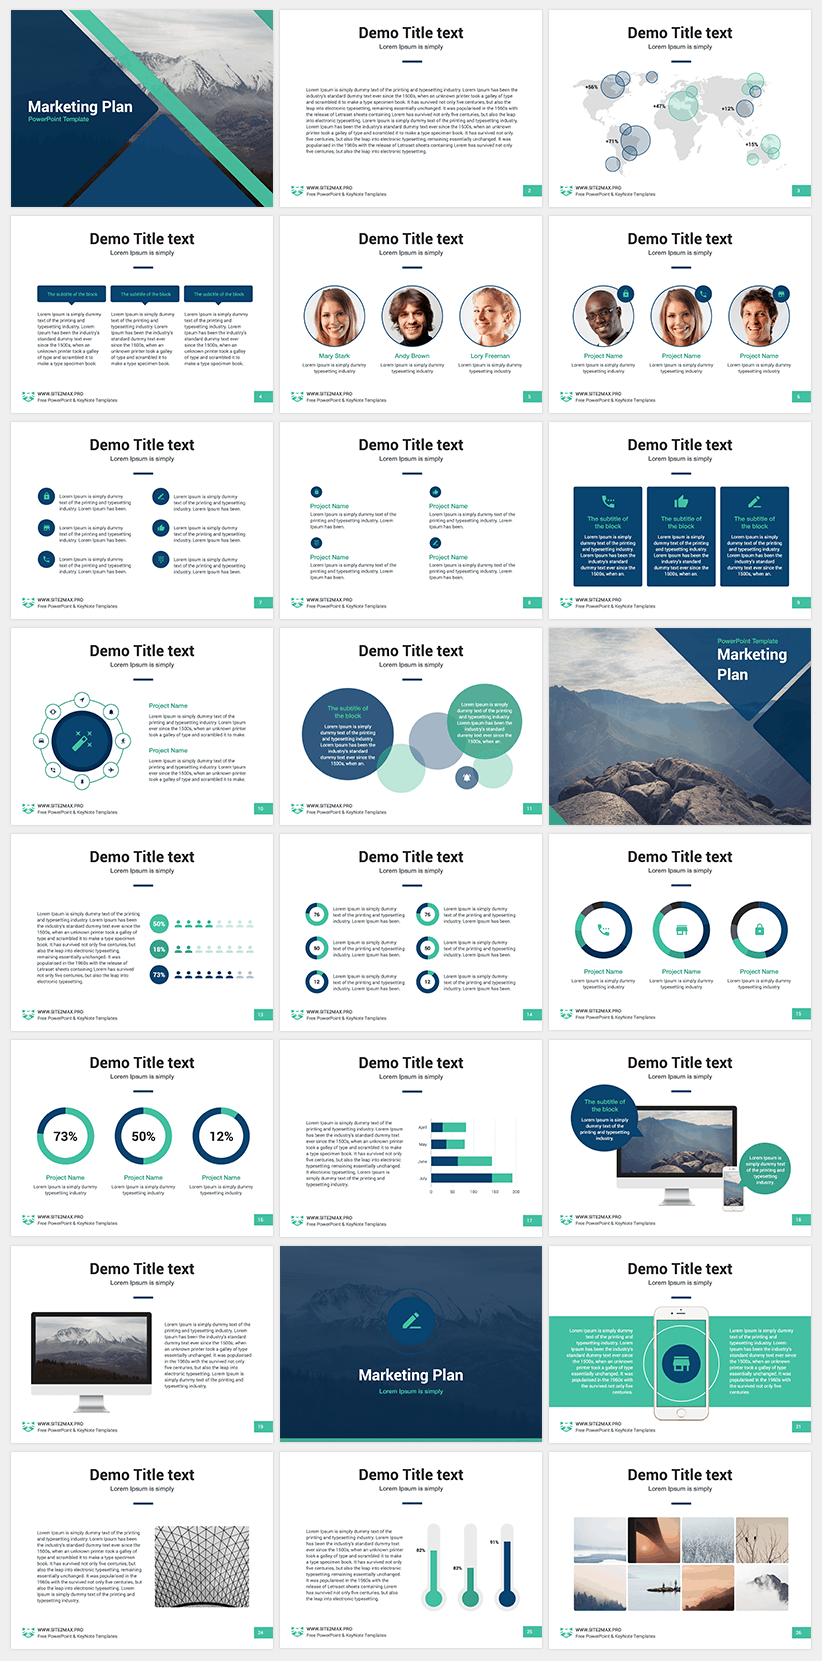 the best 8+ free powerpoint templates | hipsthetic, Presentation templates